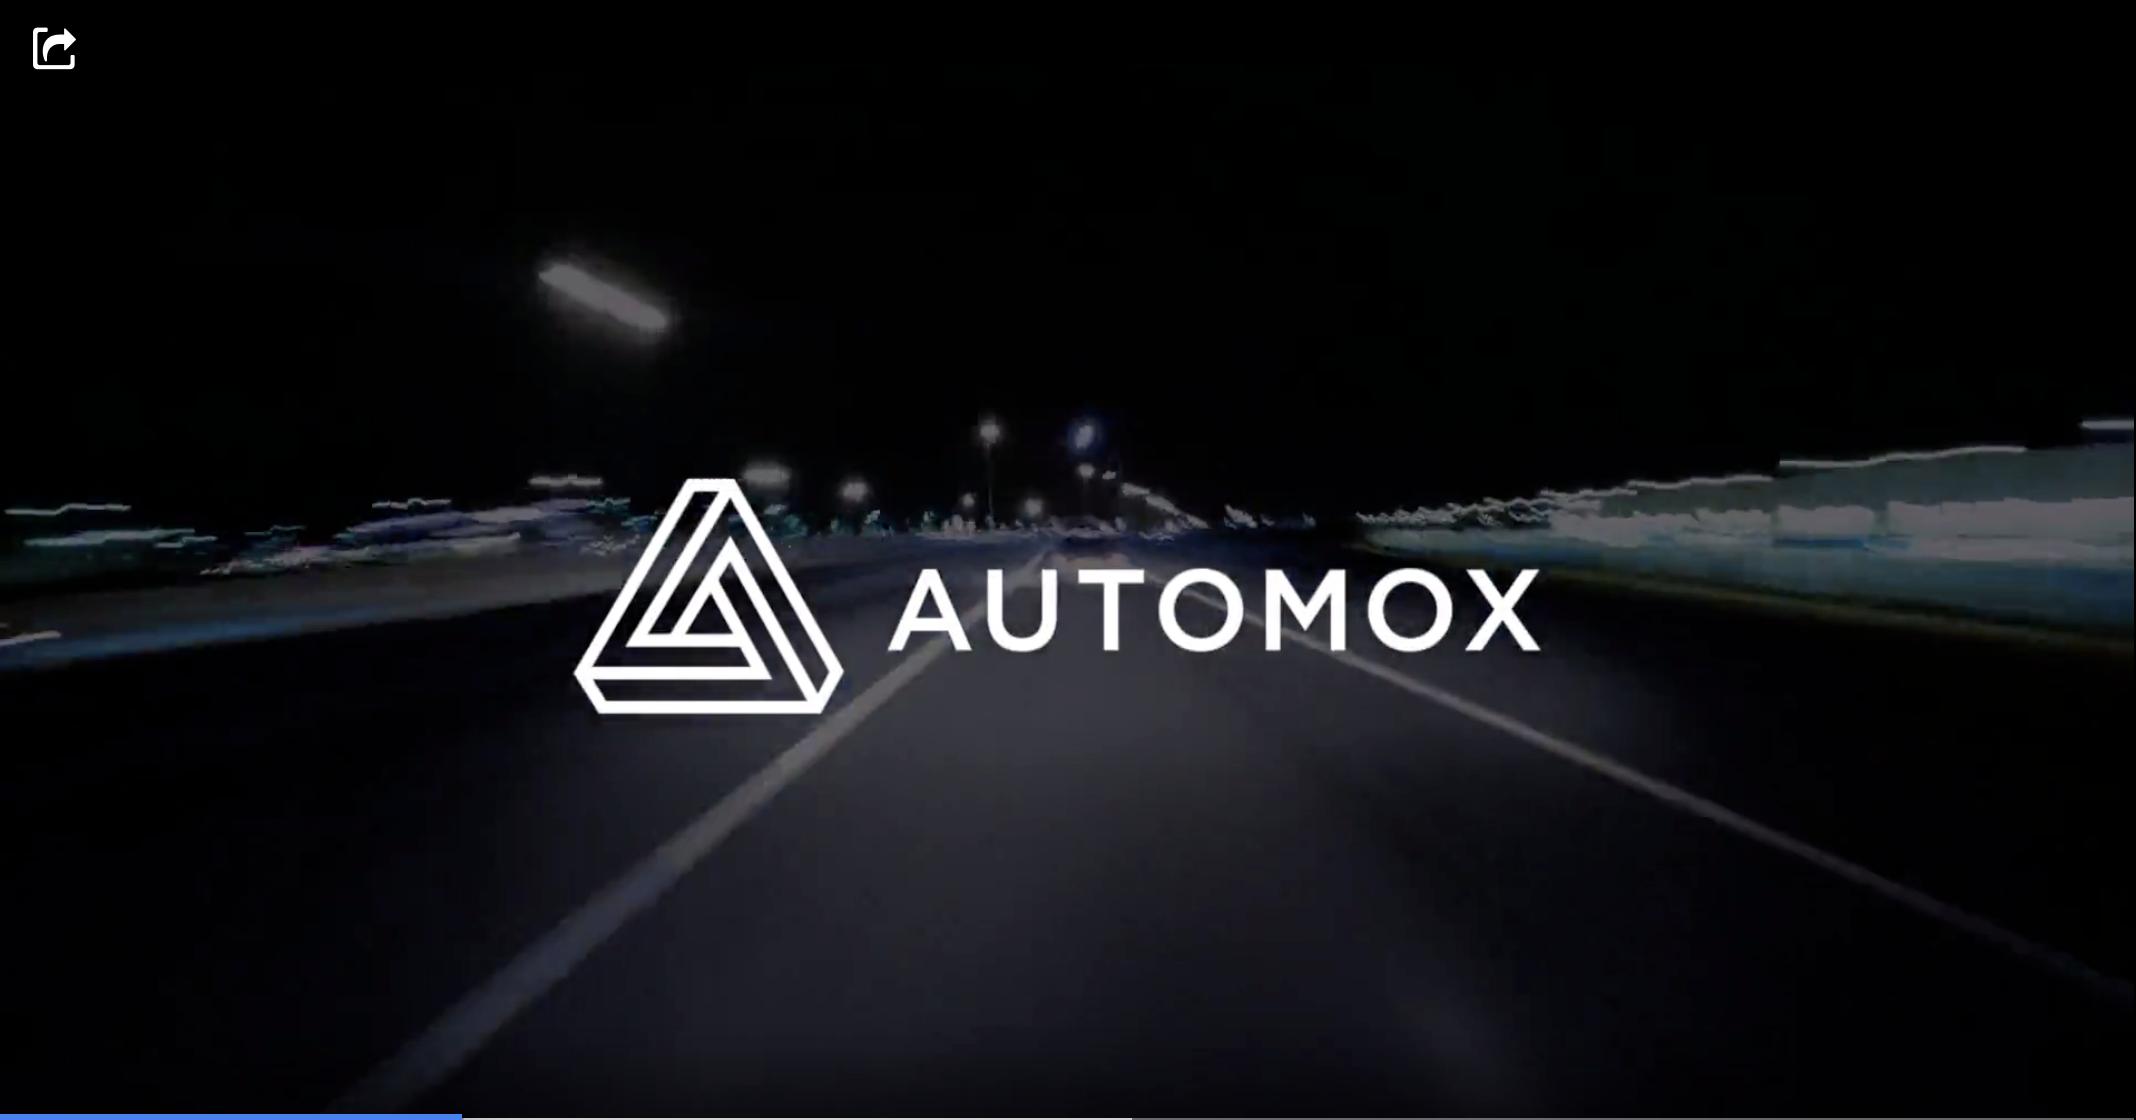 Automox Video